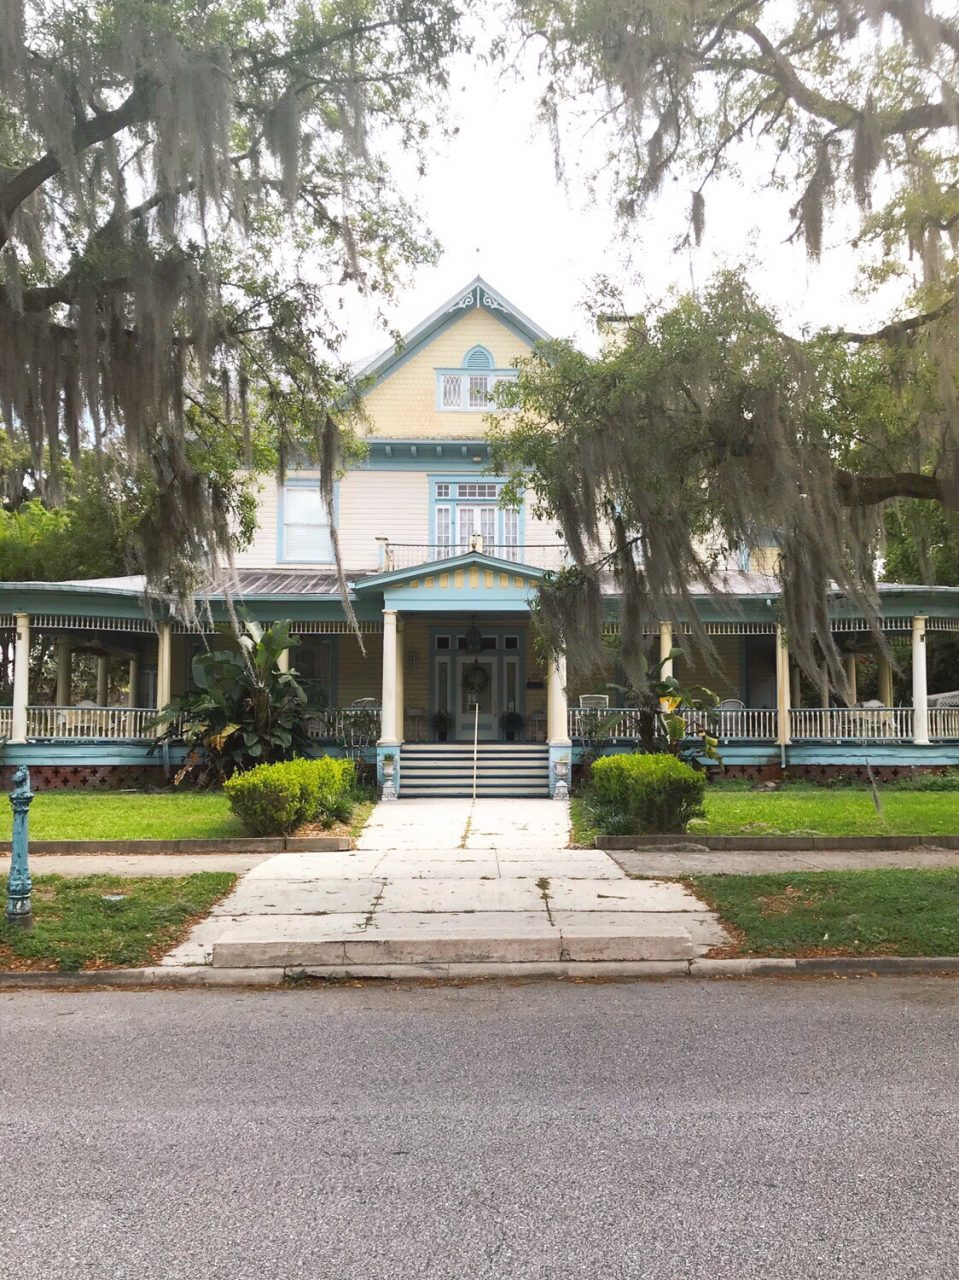 My Girl House - Former Stanford Inn in Bartow, FL